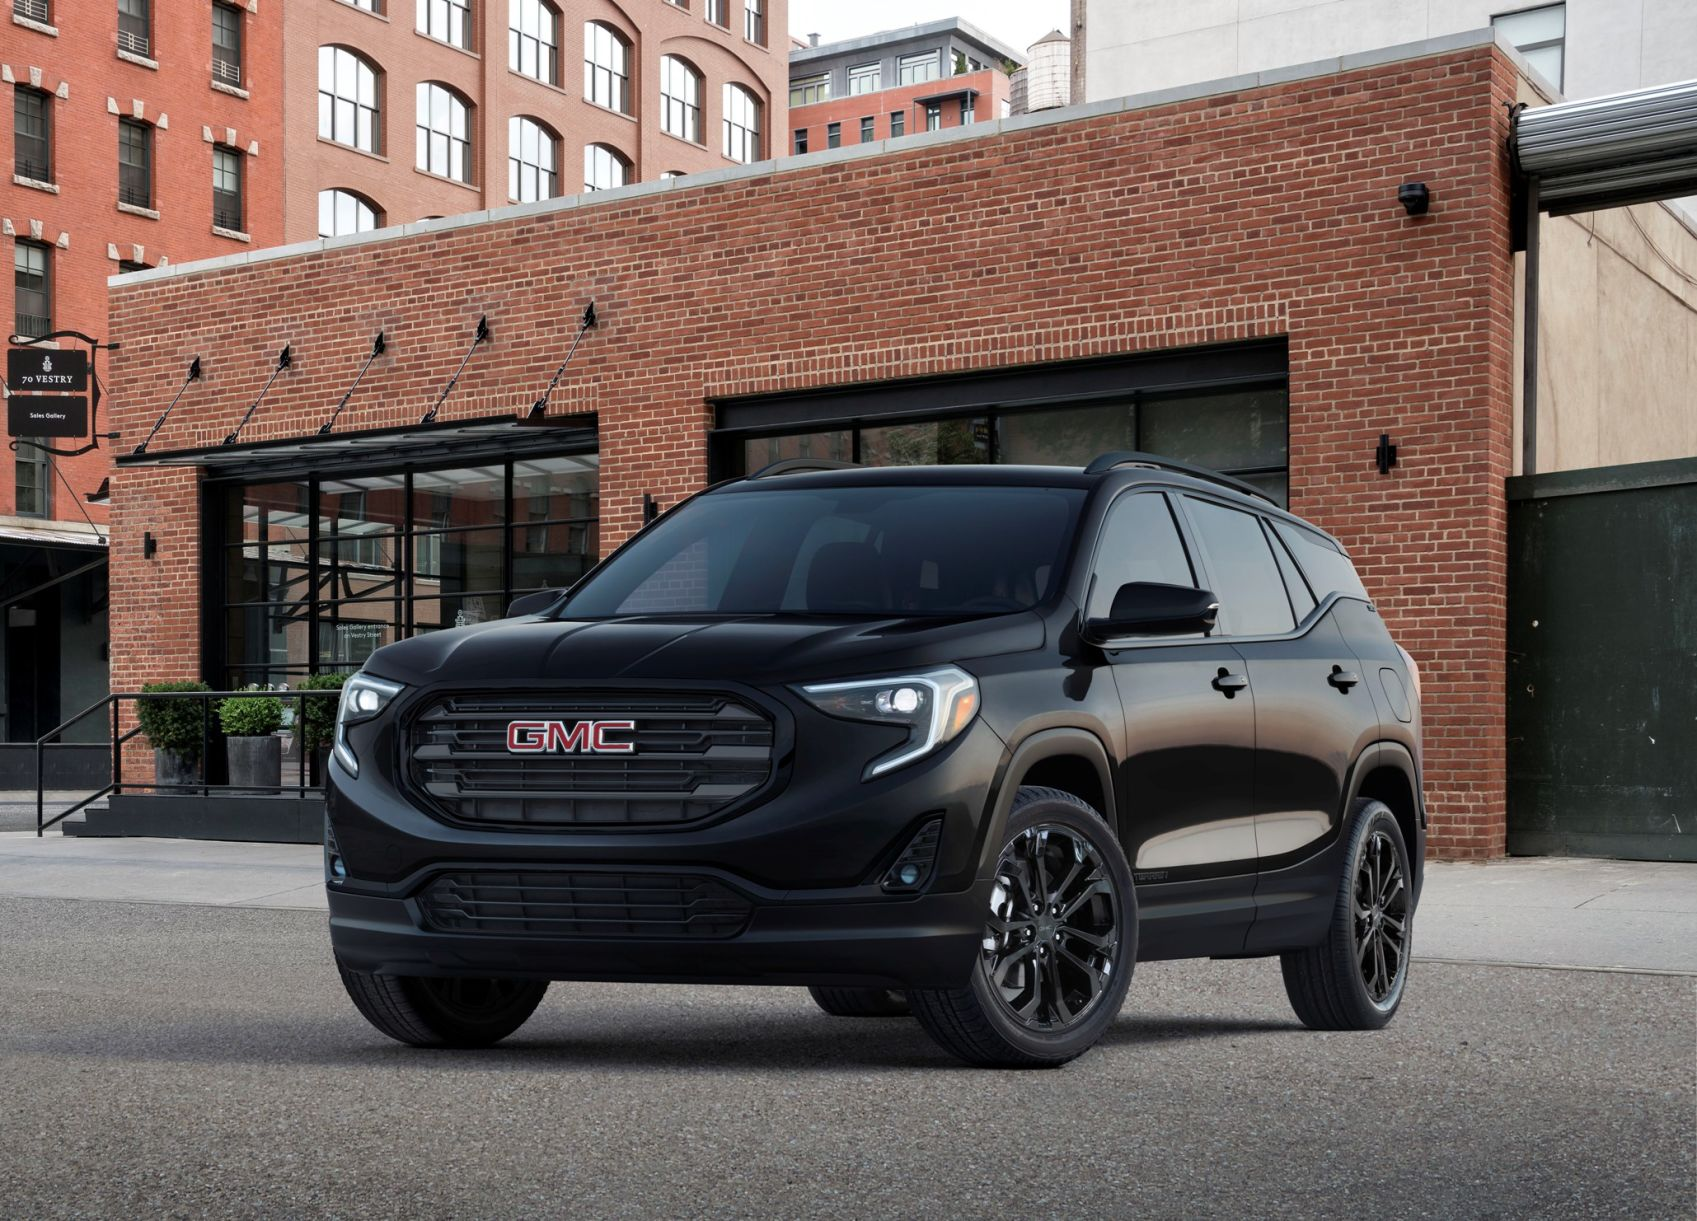 2019 Gmc Terrain Crossover Figures It Looks Good In Black Automotive Stltoday Com